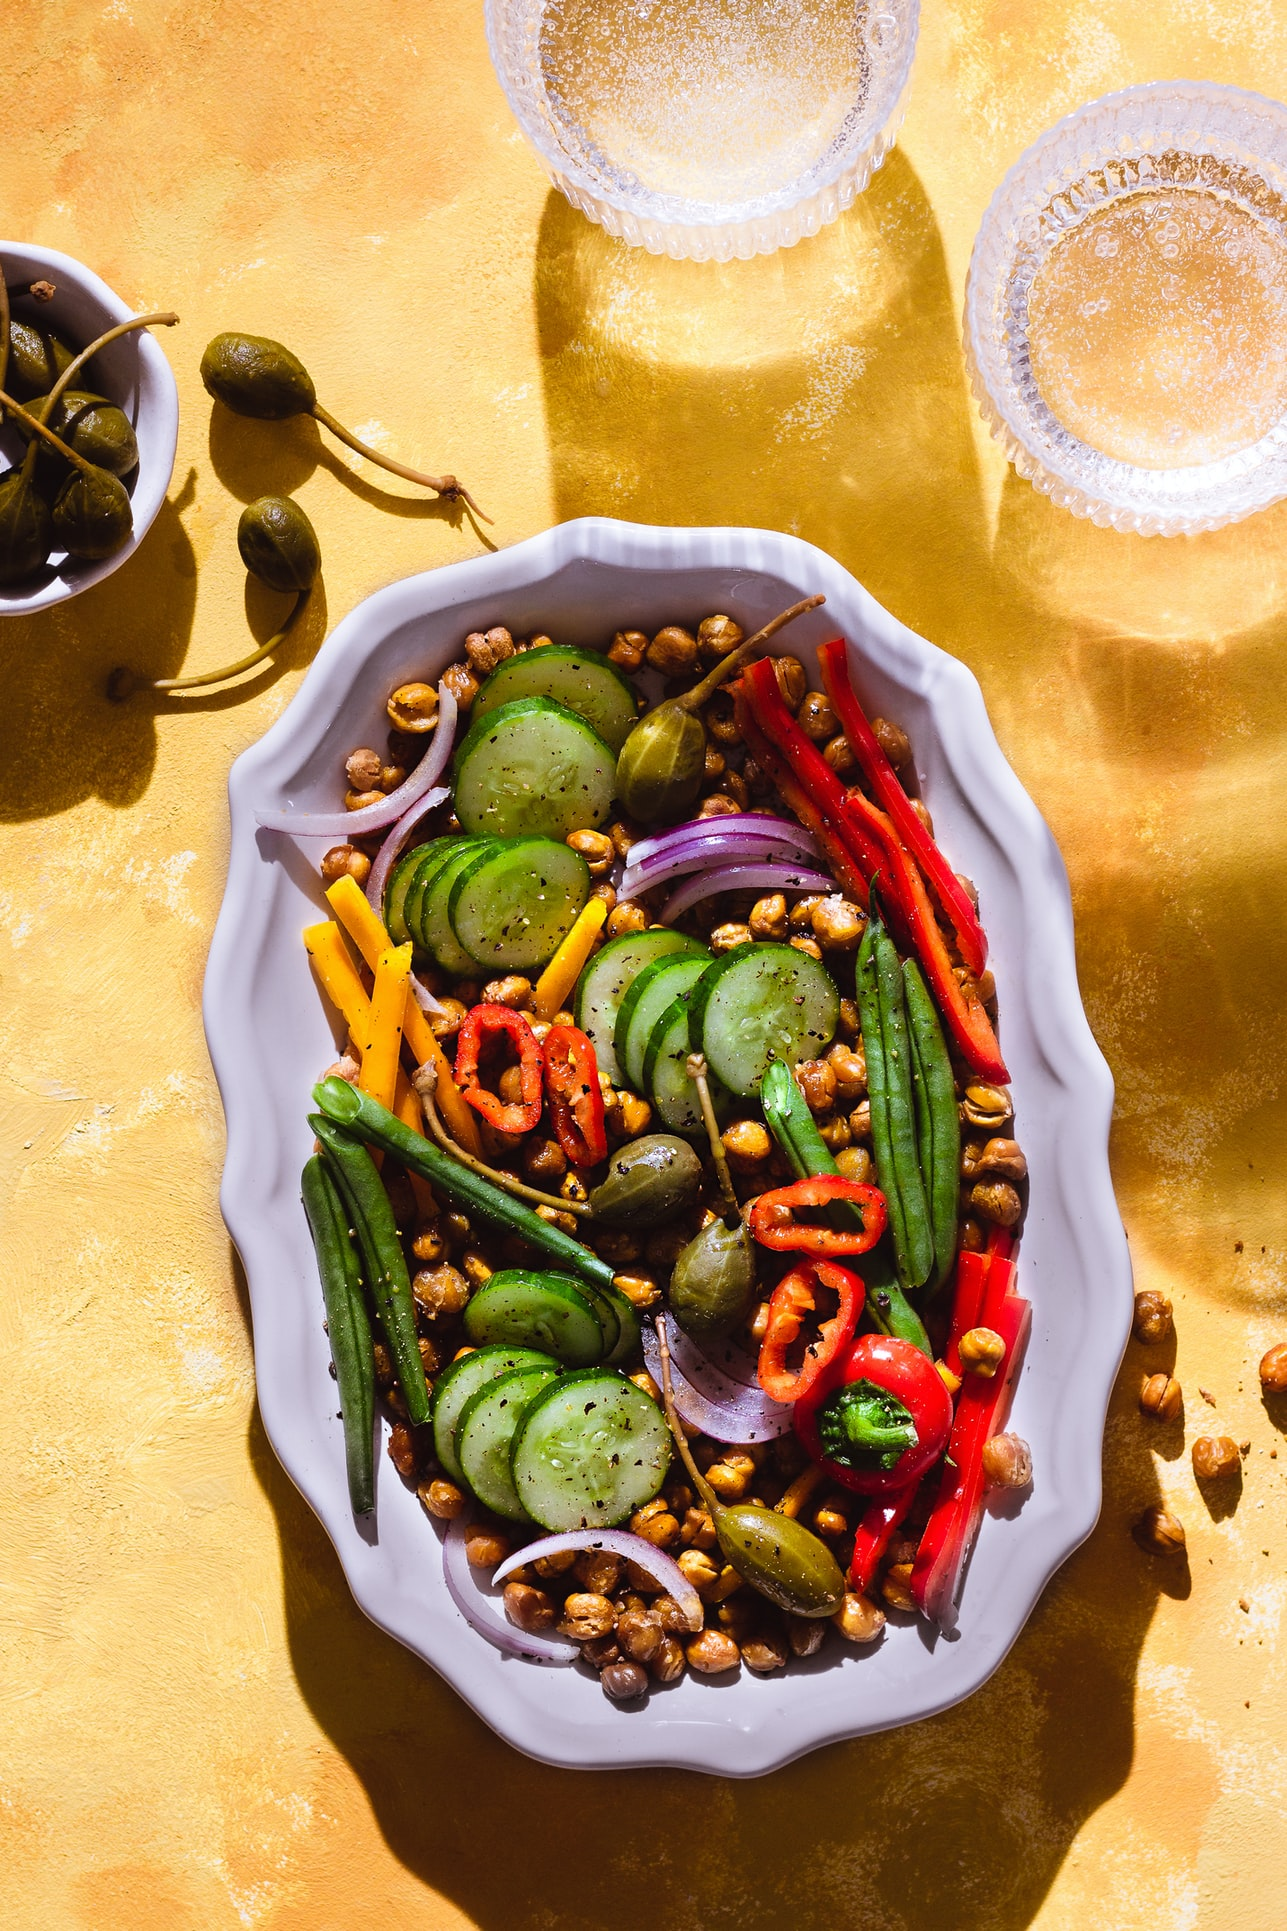 Salad with caper berries| Royalty free from Unsplash